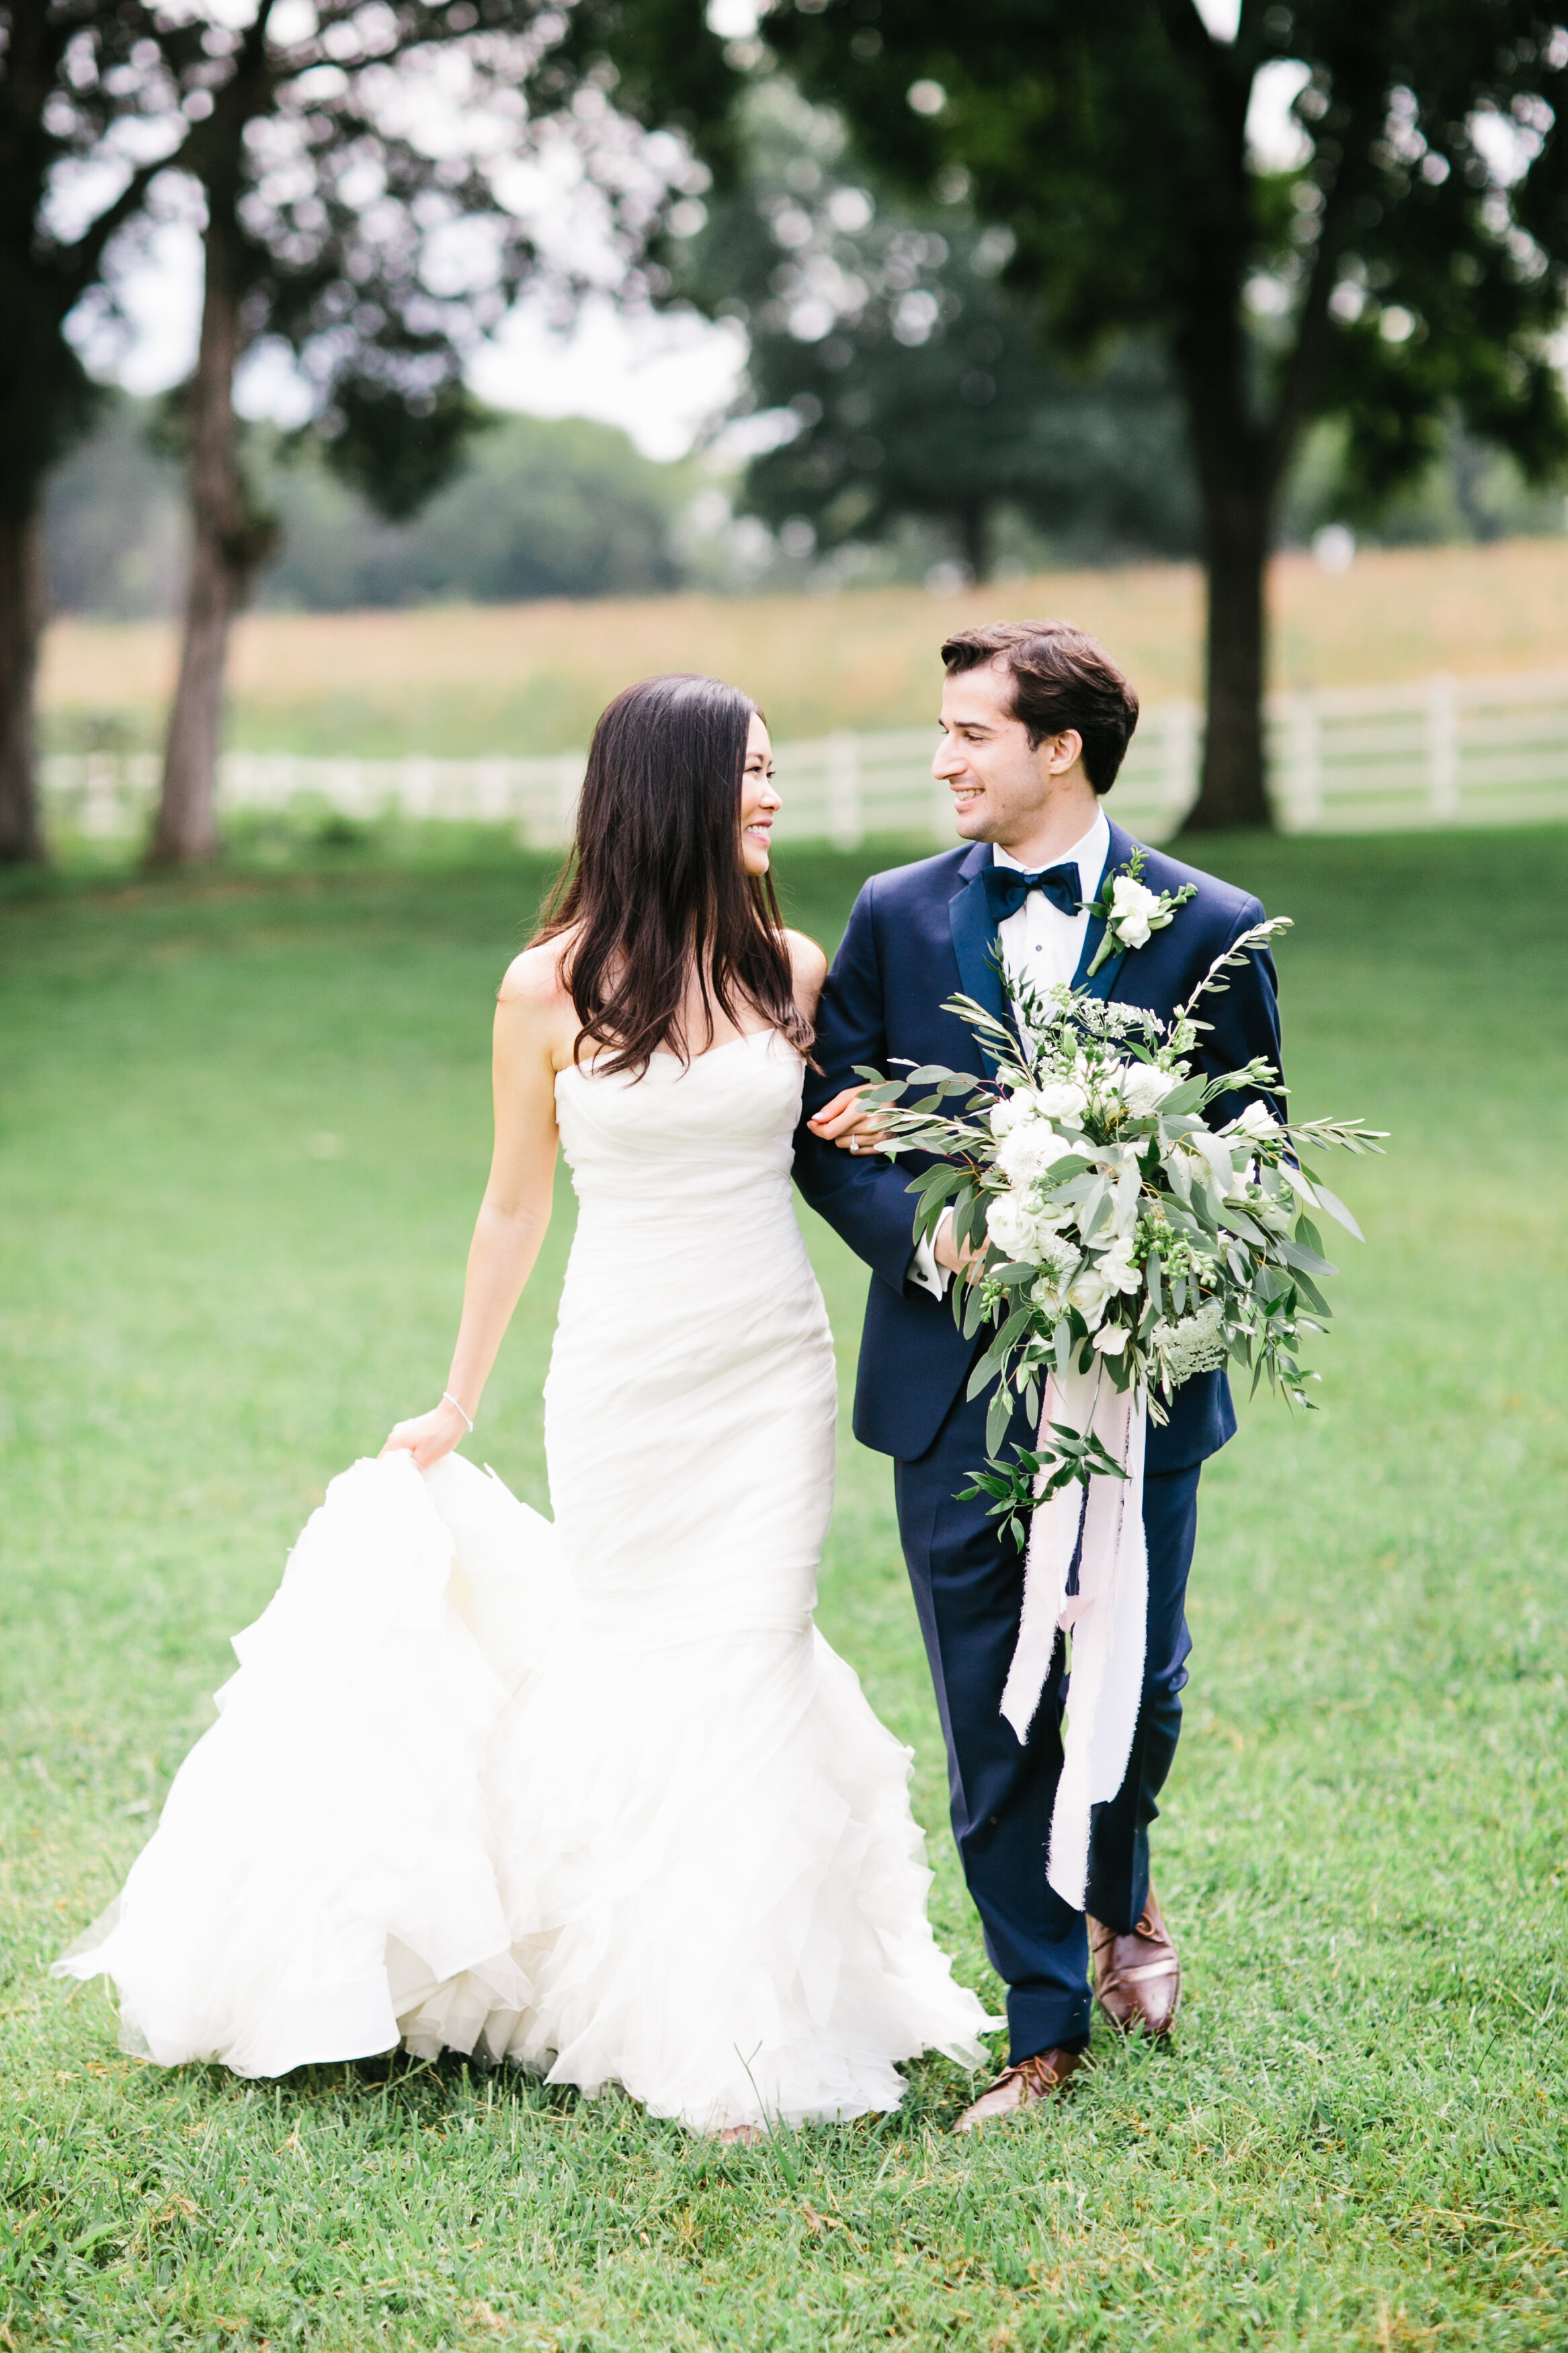 Fionnie_Jacob_Marblegate_Farm_Wedding_Knoxville_Abigail_Malone_Photography-386.jpg